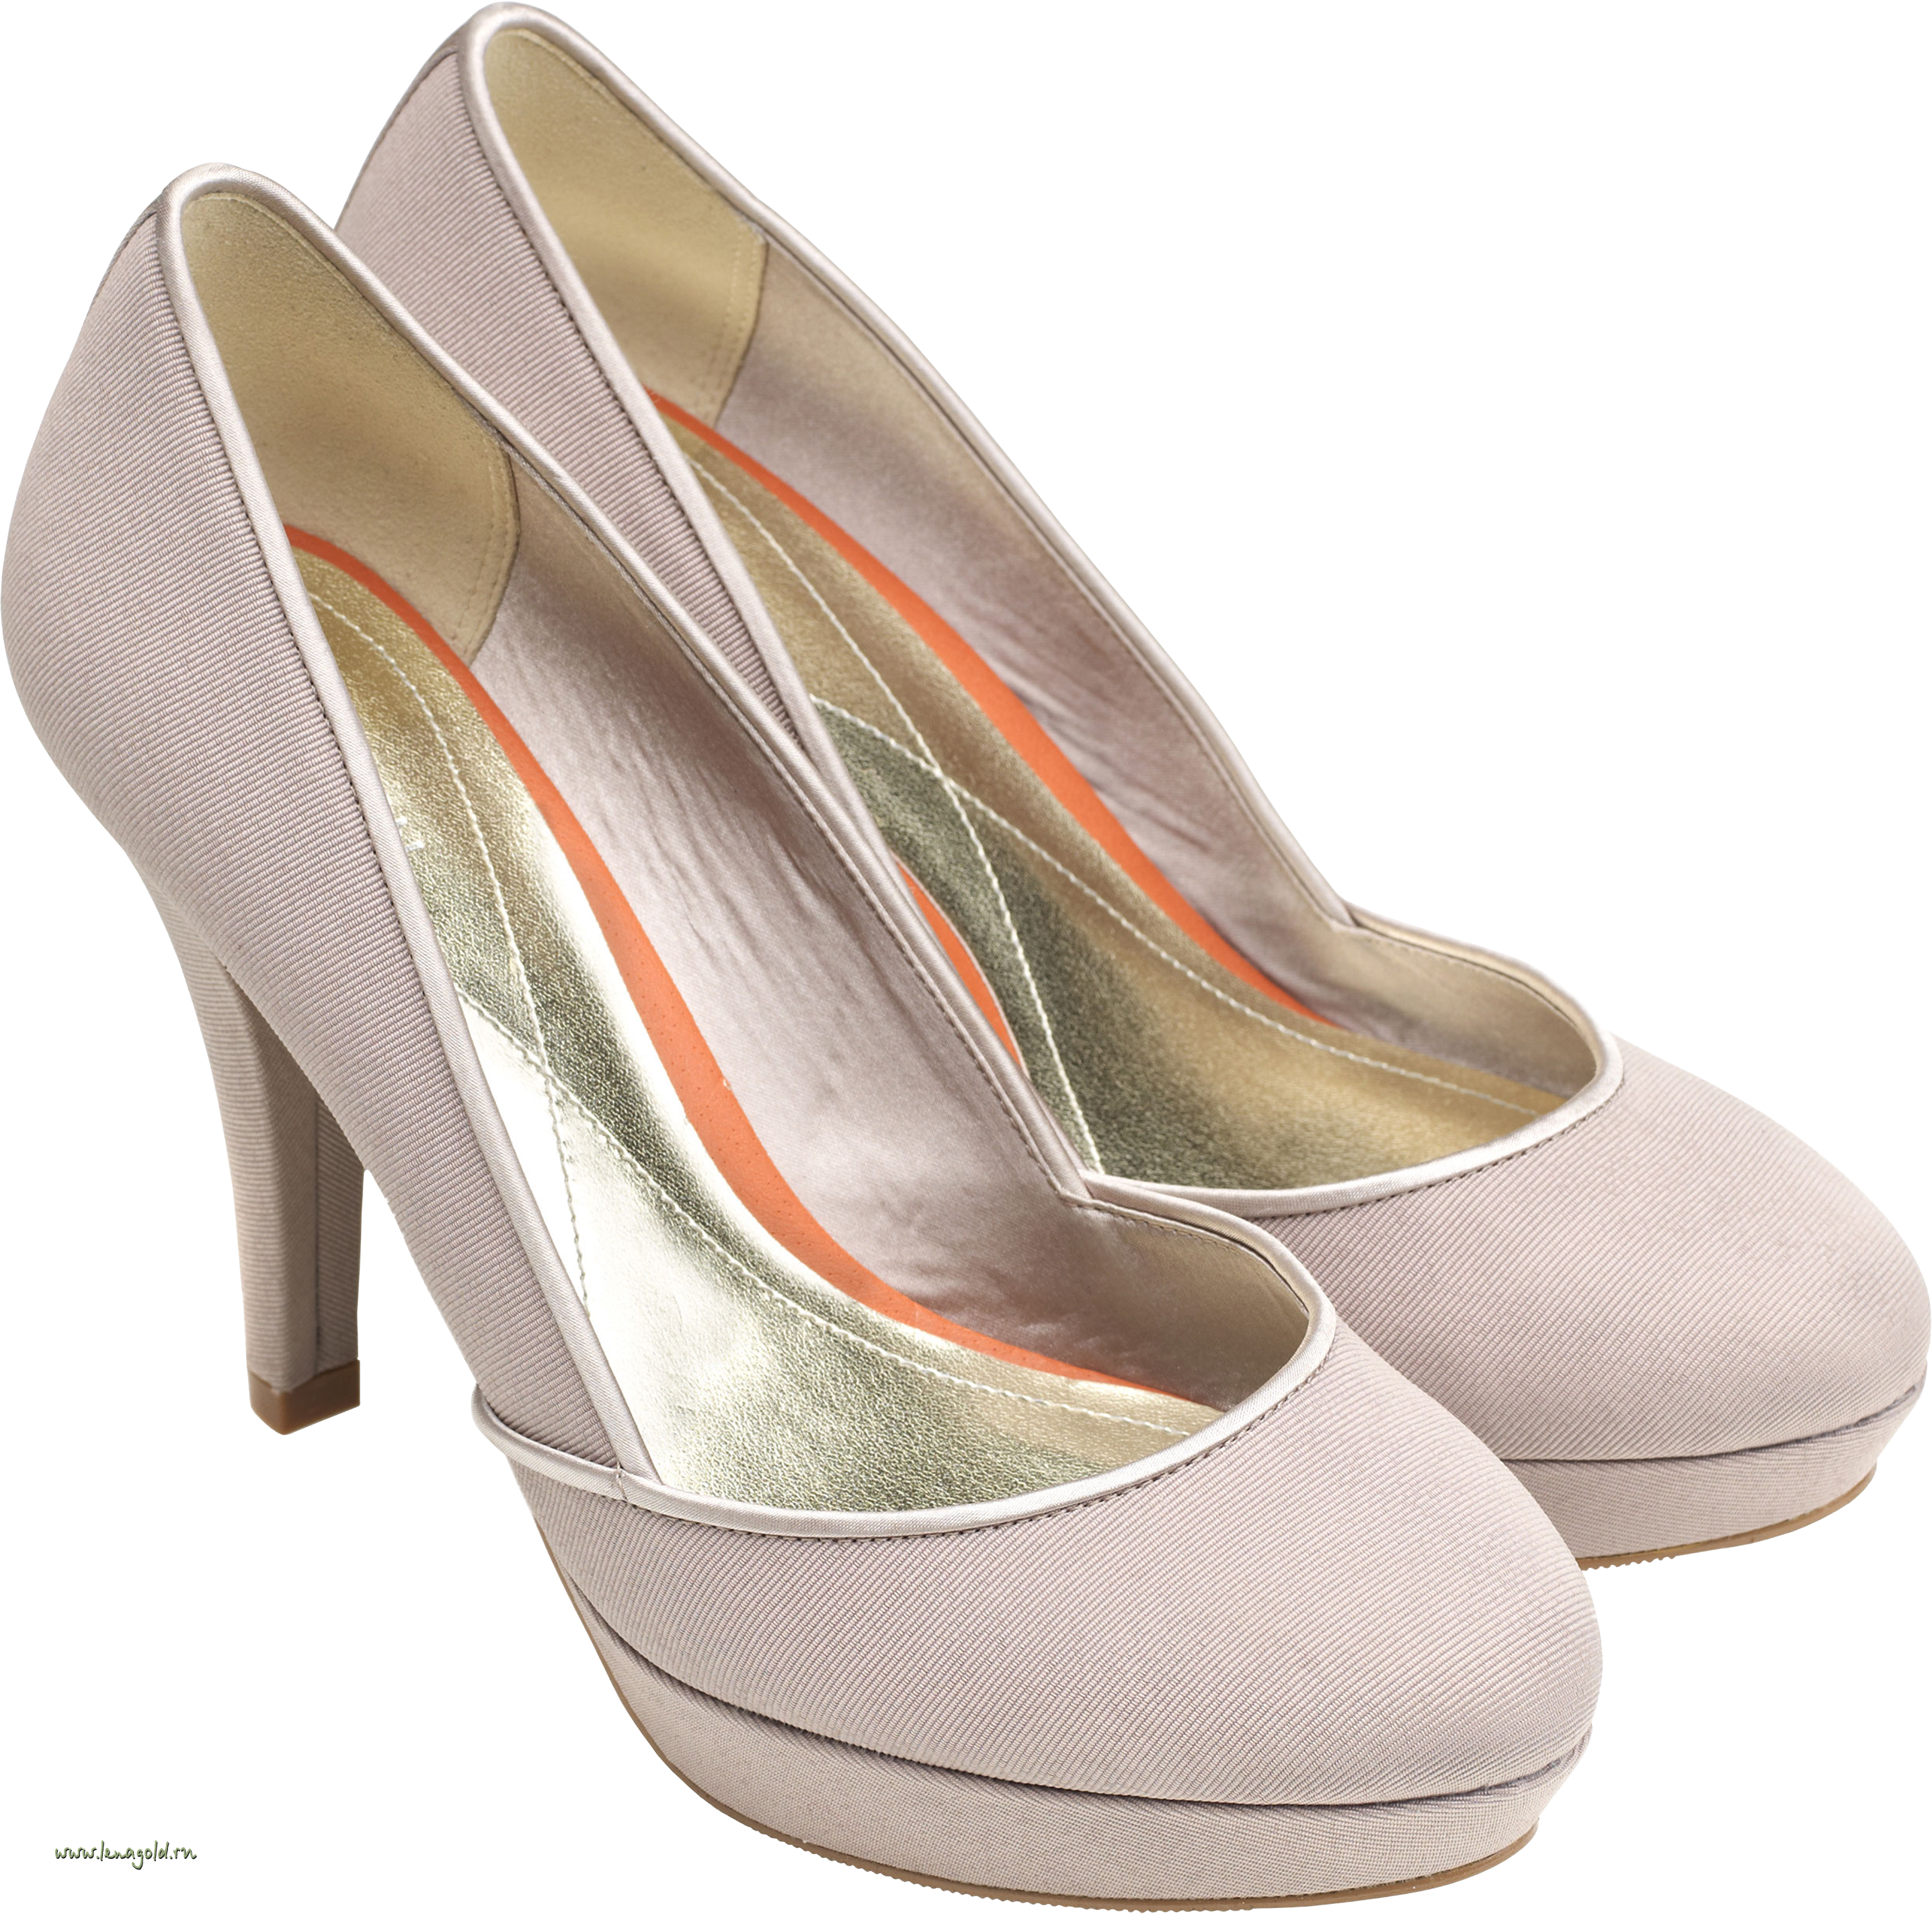 White Women Shoes PNG Image